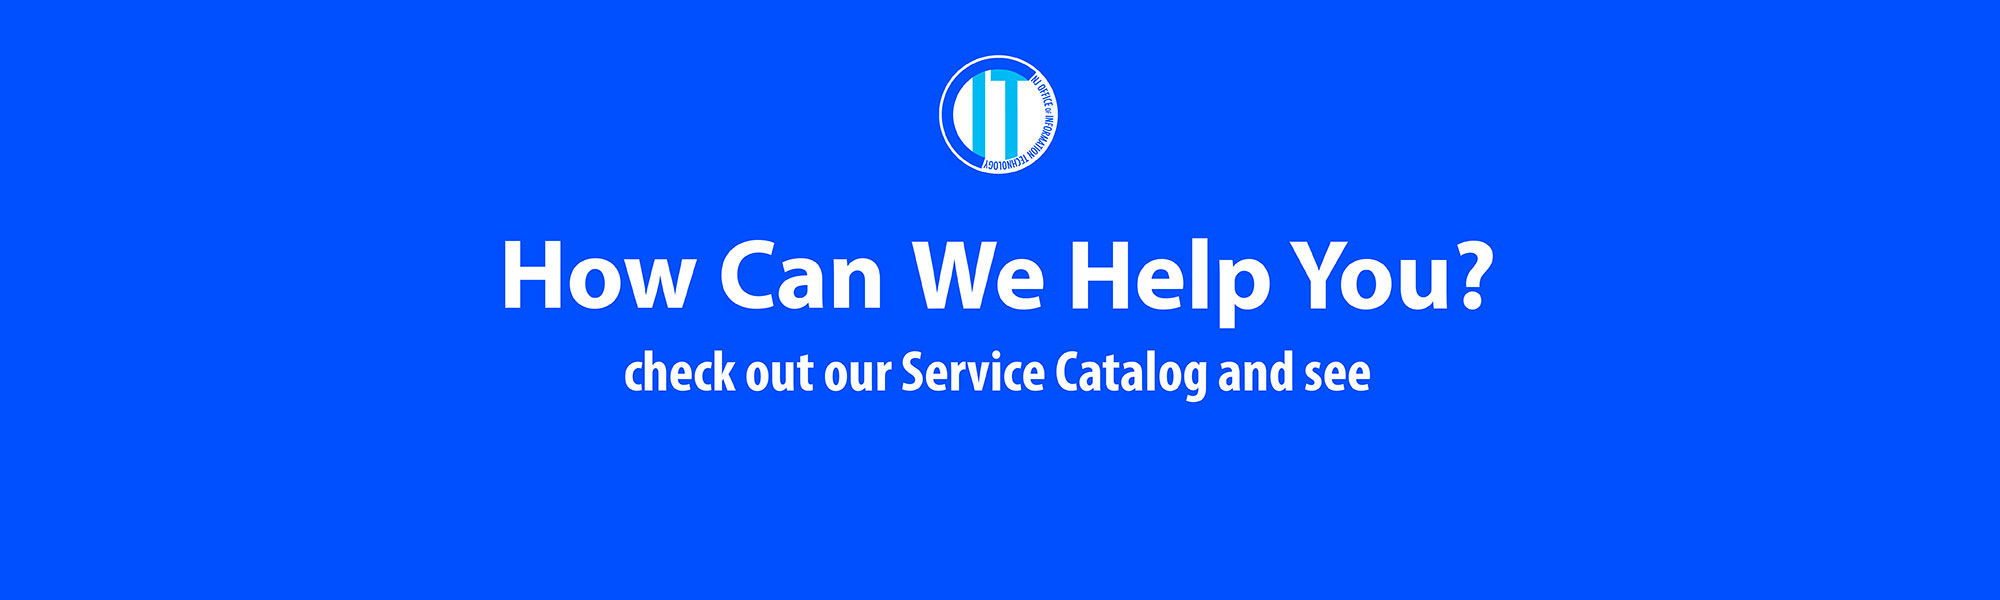 How we can help you?- Check OIT FY18 Service Catalog